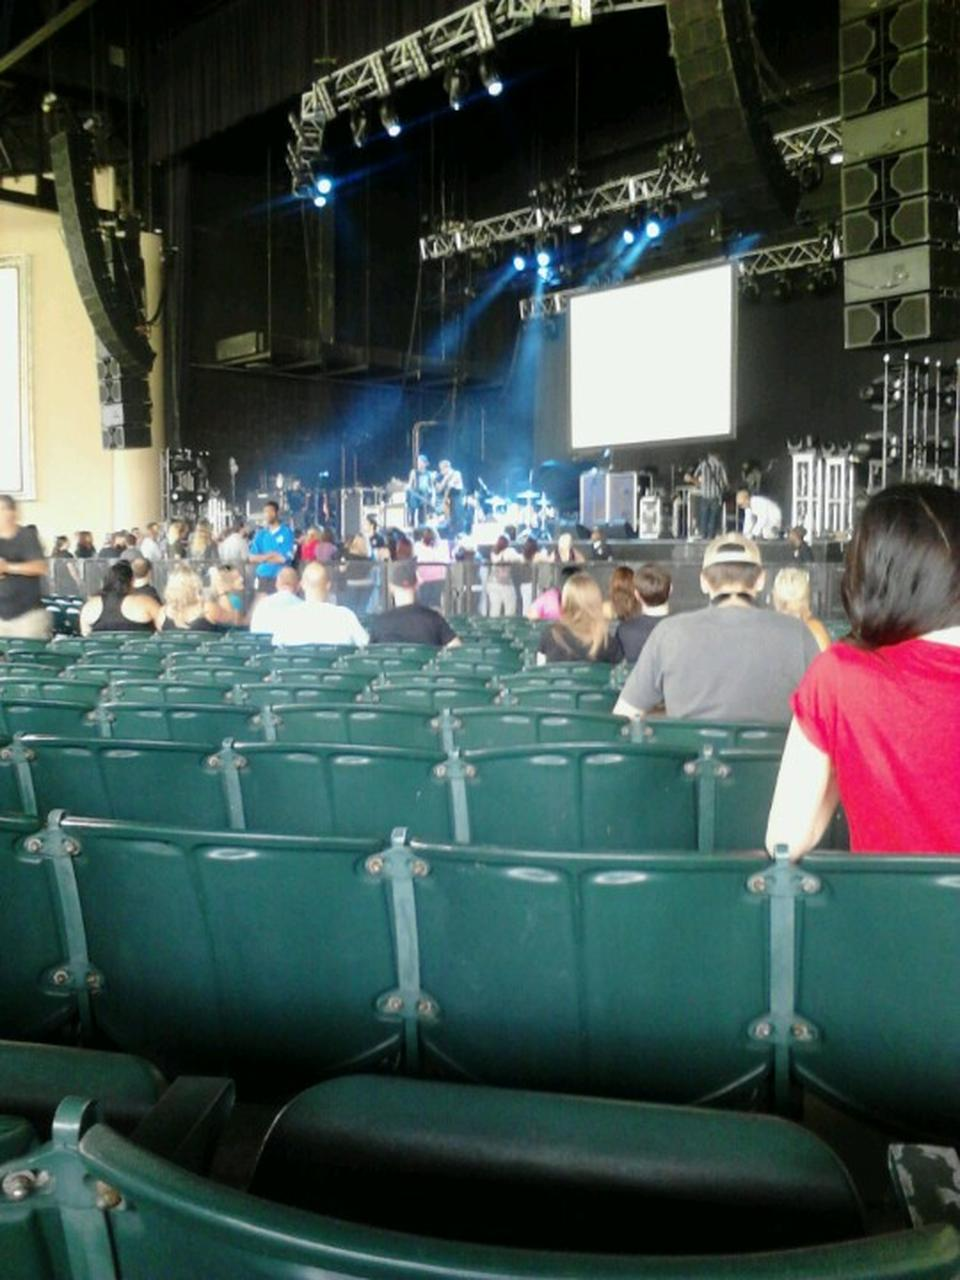 Concert Seat View for Cellairis Amphitheatre at Lakewood Section 101